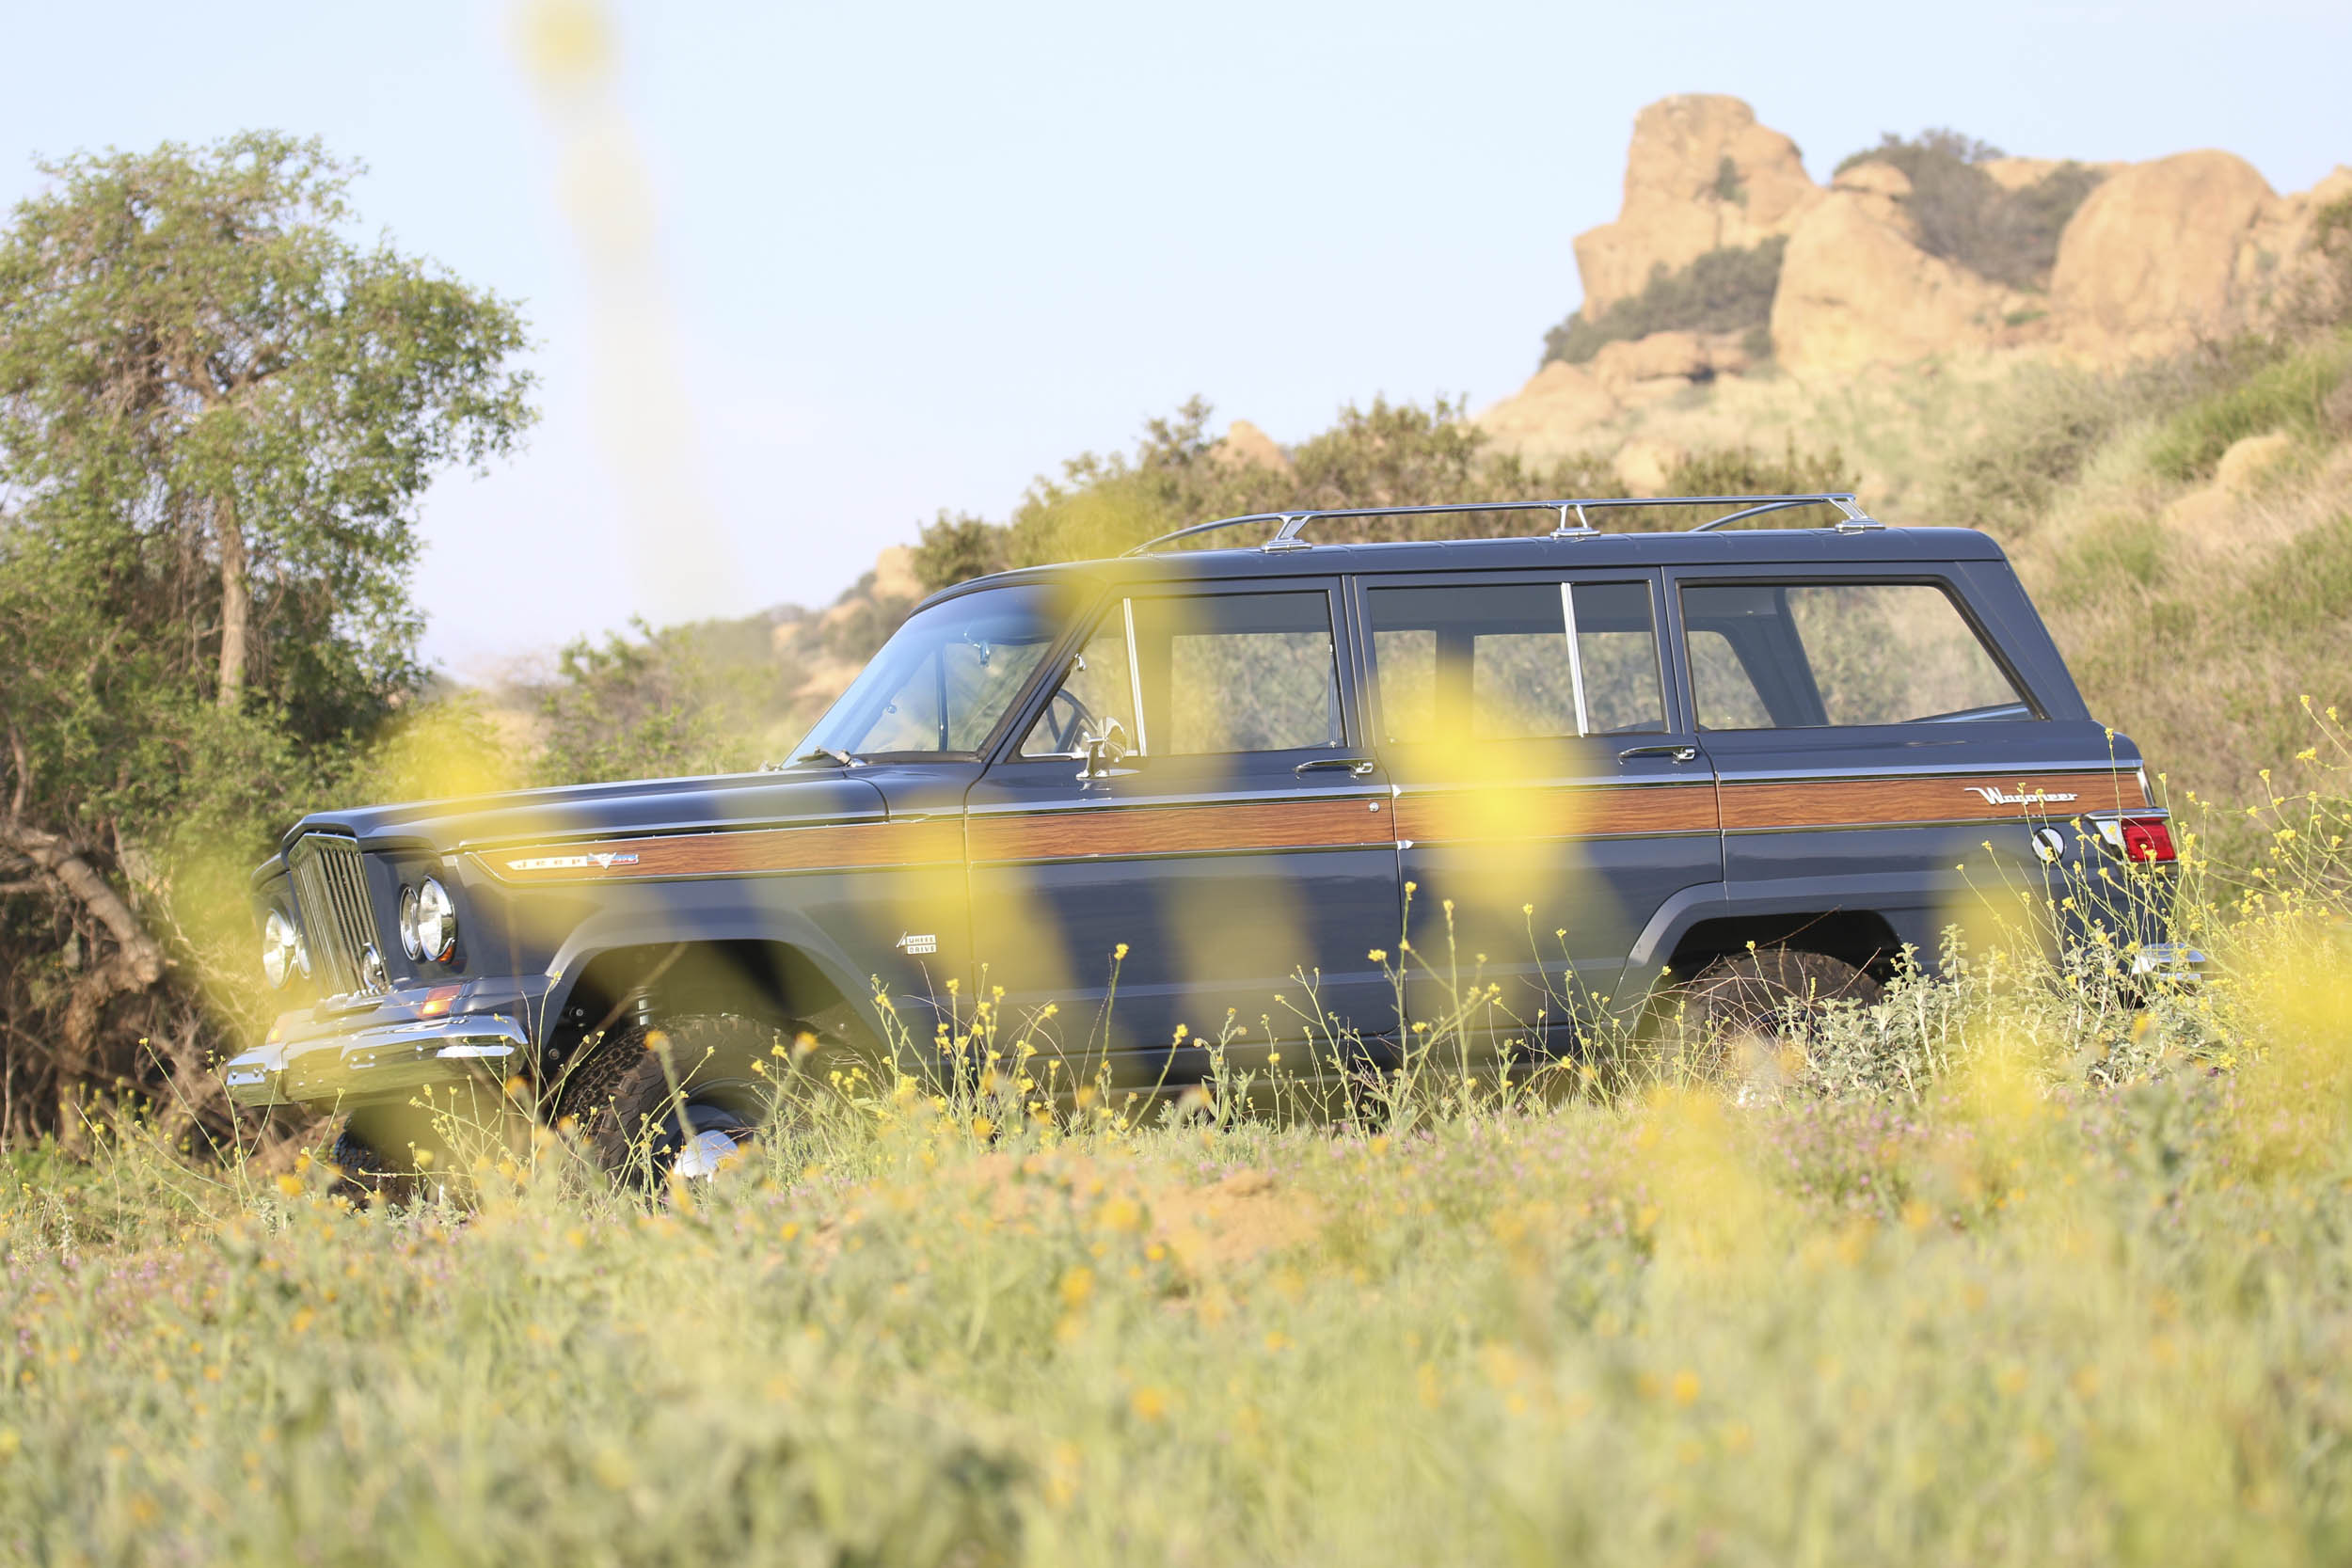 ICON Wagoneer profile through flower field